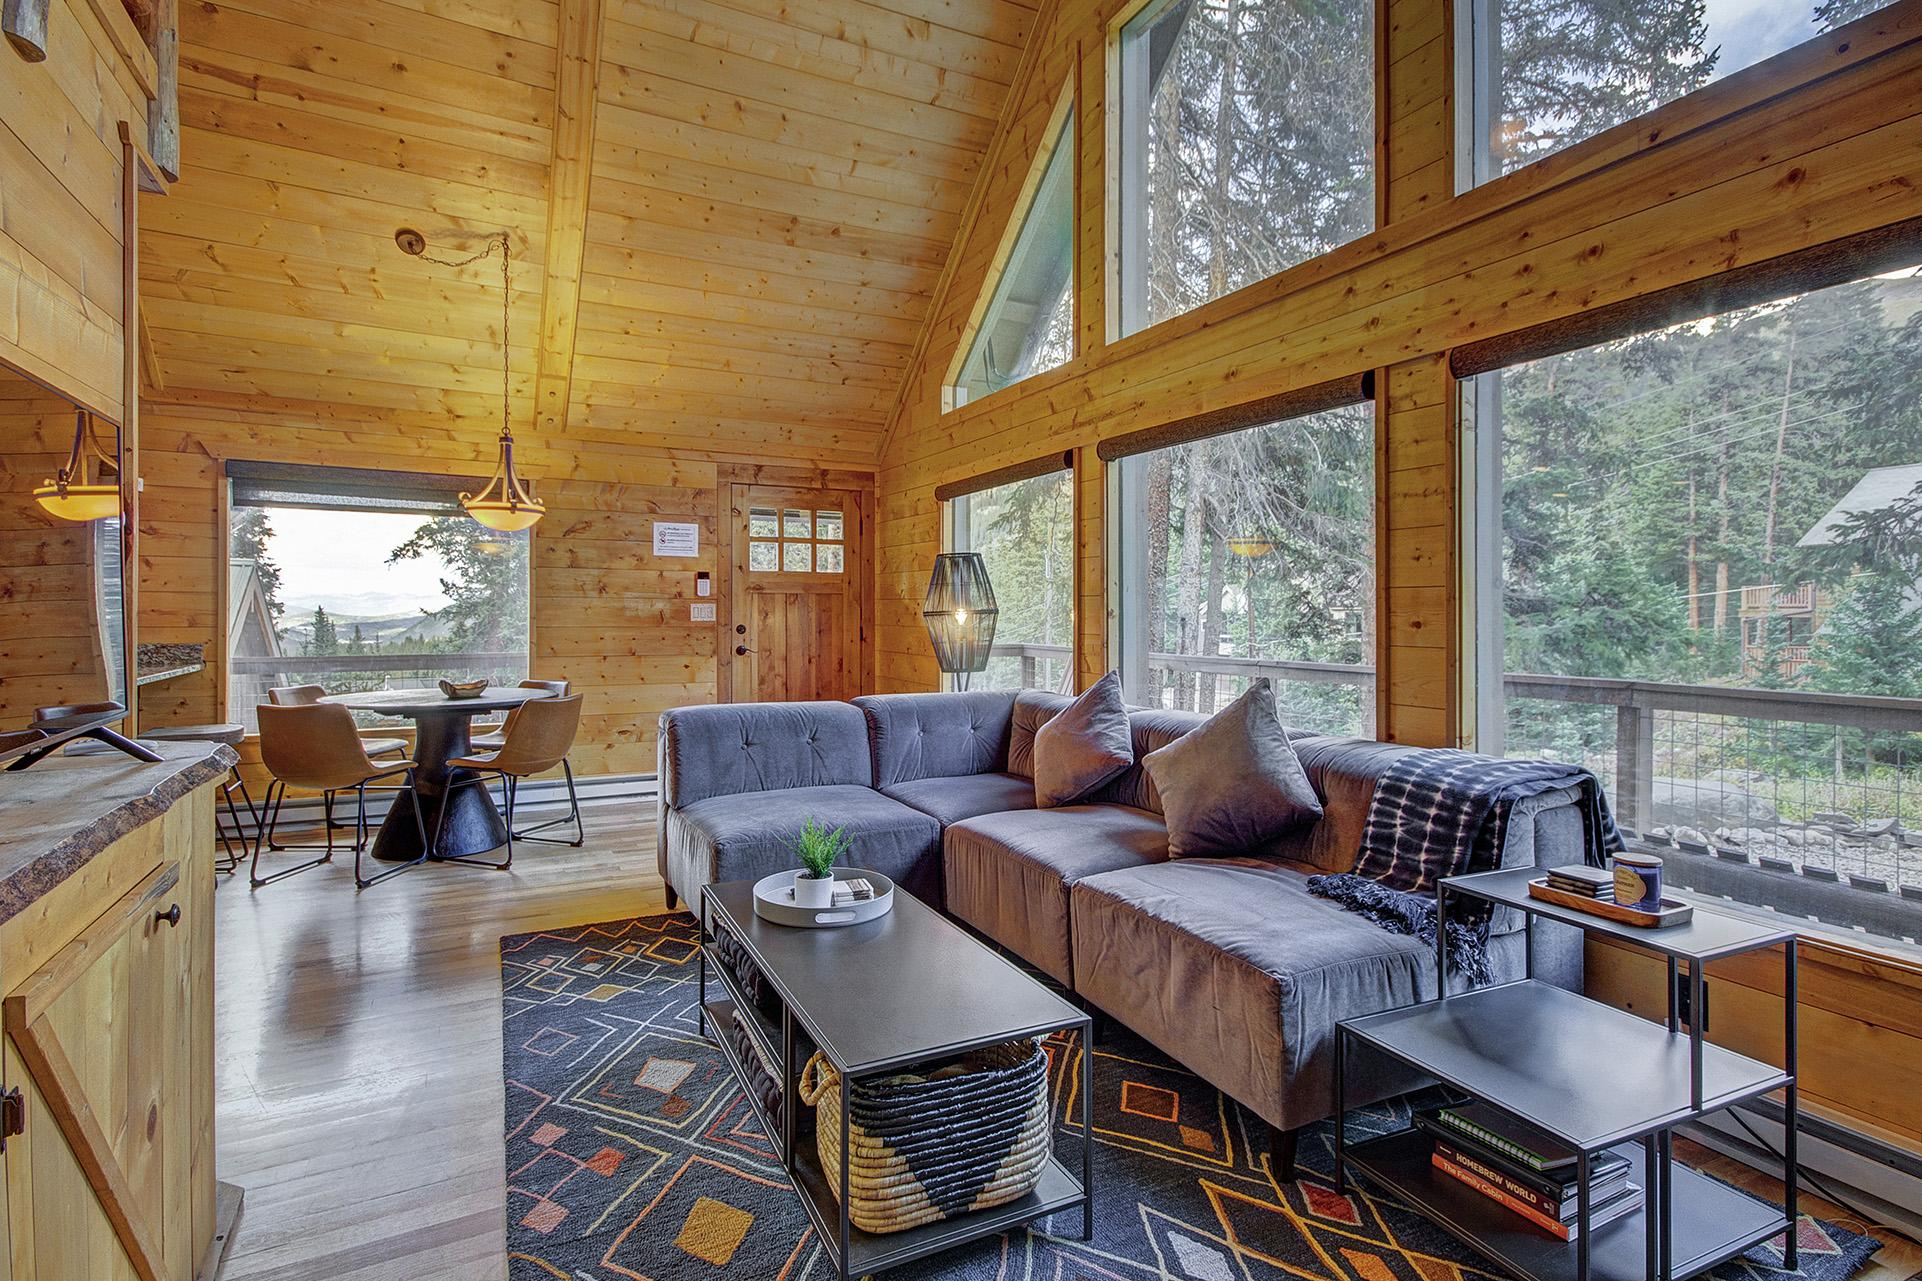 Charming log cabin 10 minutes from Breckenridge